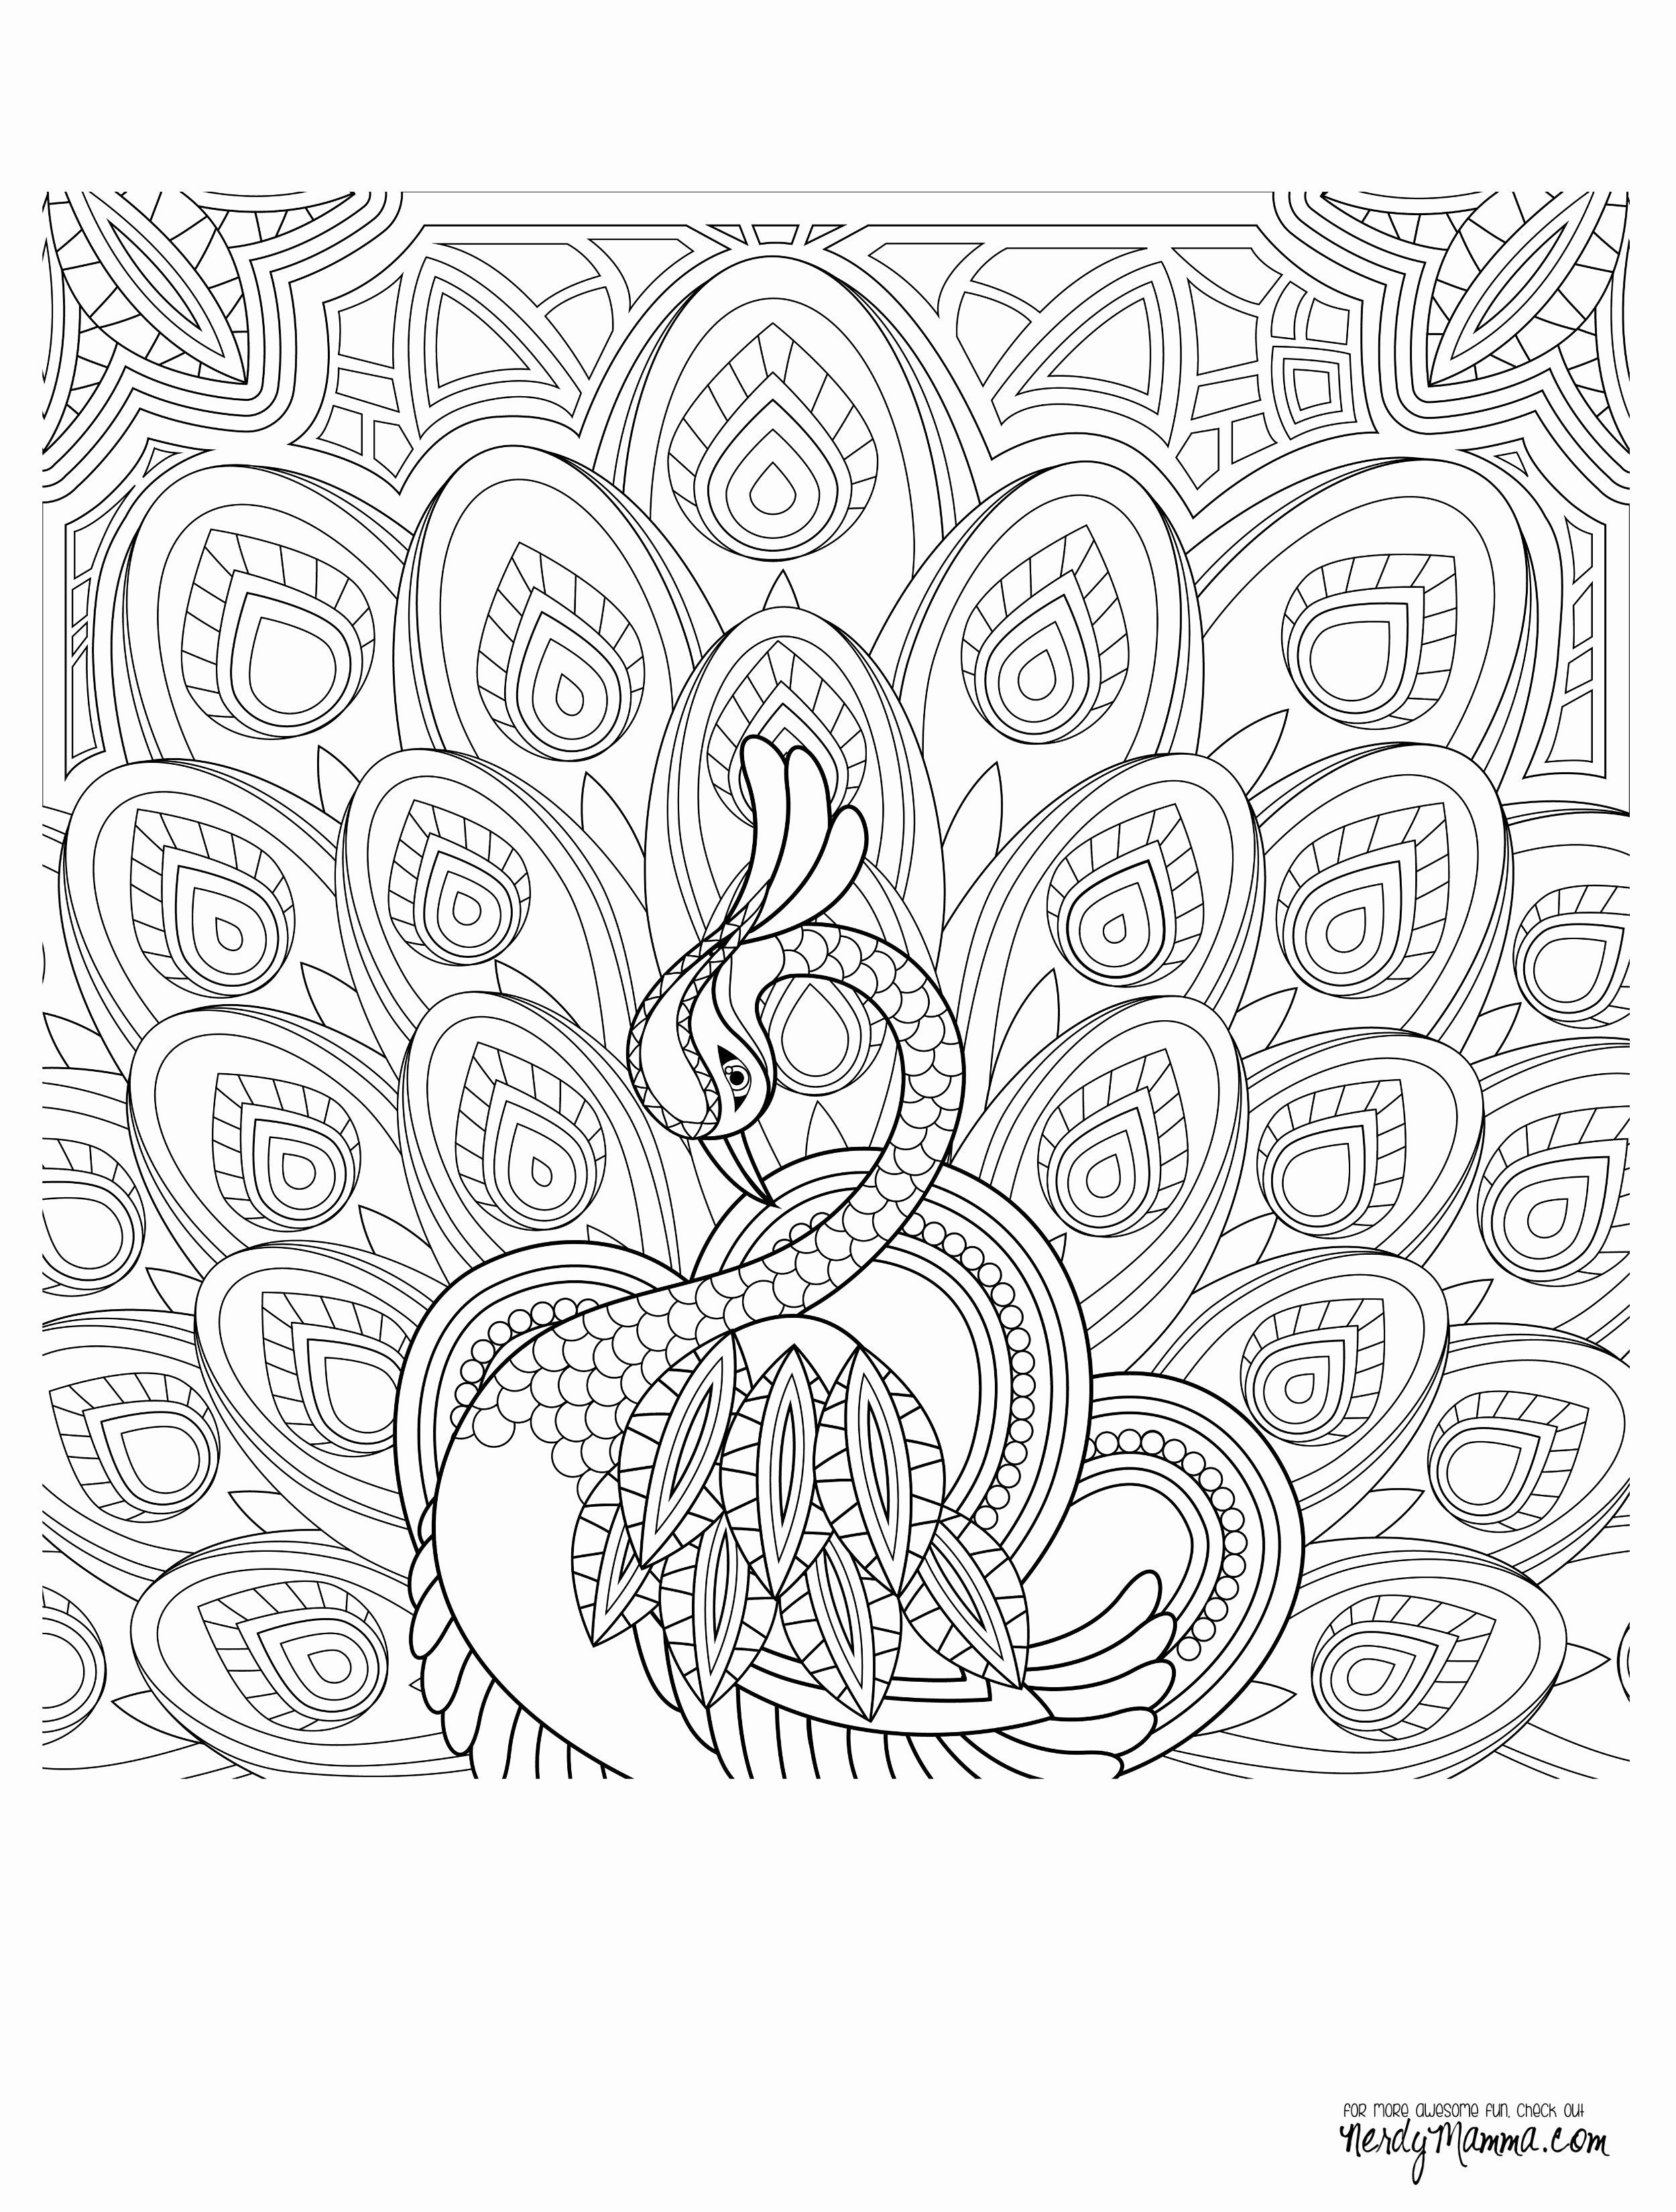 color therapy coloring pages Download-Free Printable Coloring Pages For Adults Best Awesome Coloring Page For Adult Od Kids Simple Floral Heart With 8-q